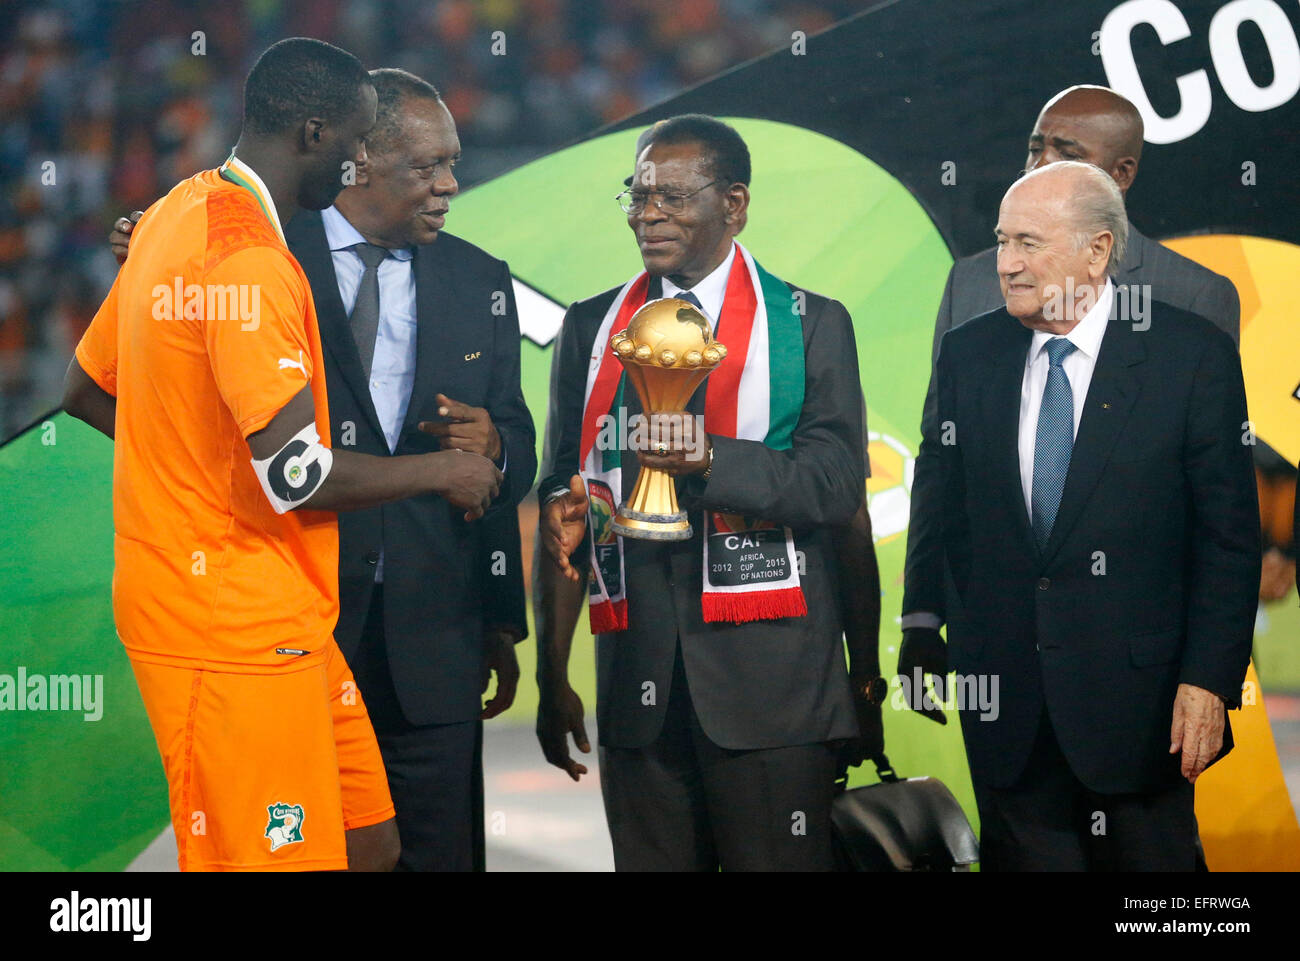 Equatorial Guinea President Teodoro Obiang Nguema Mbasogo (C) and Fifa President Sepp Blatter (R  presents a trophy - Stock Image